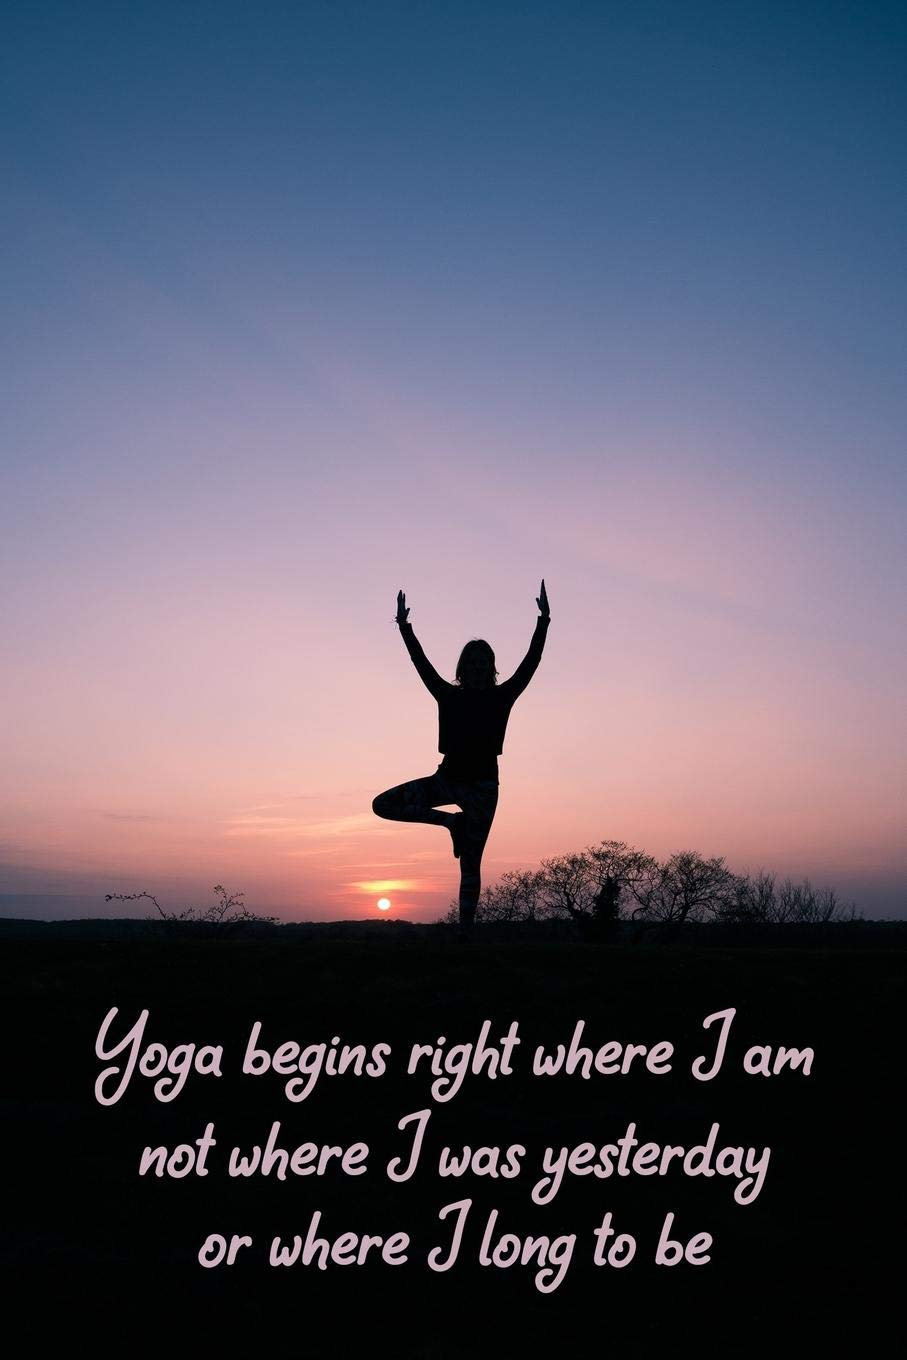 Yoga begins right where I am not where I was yesterday or ...